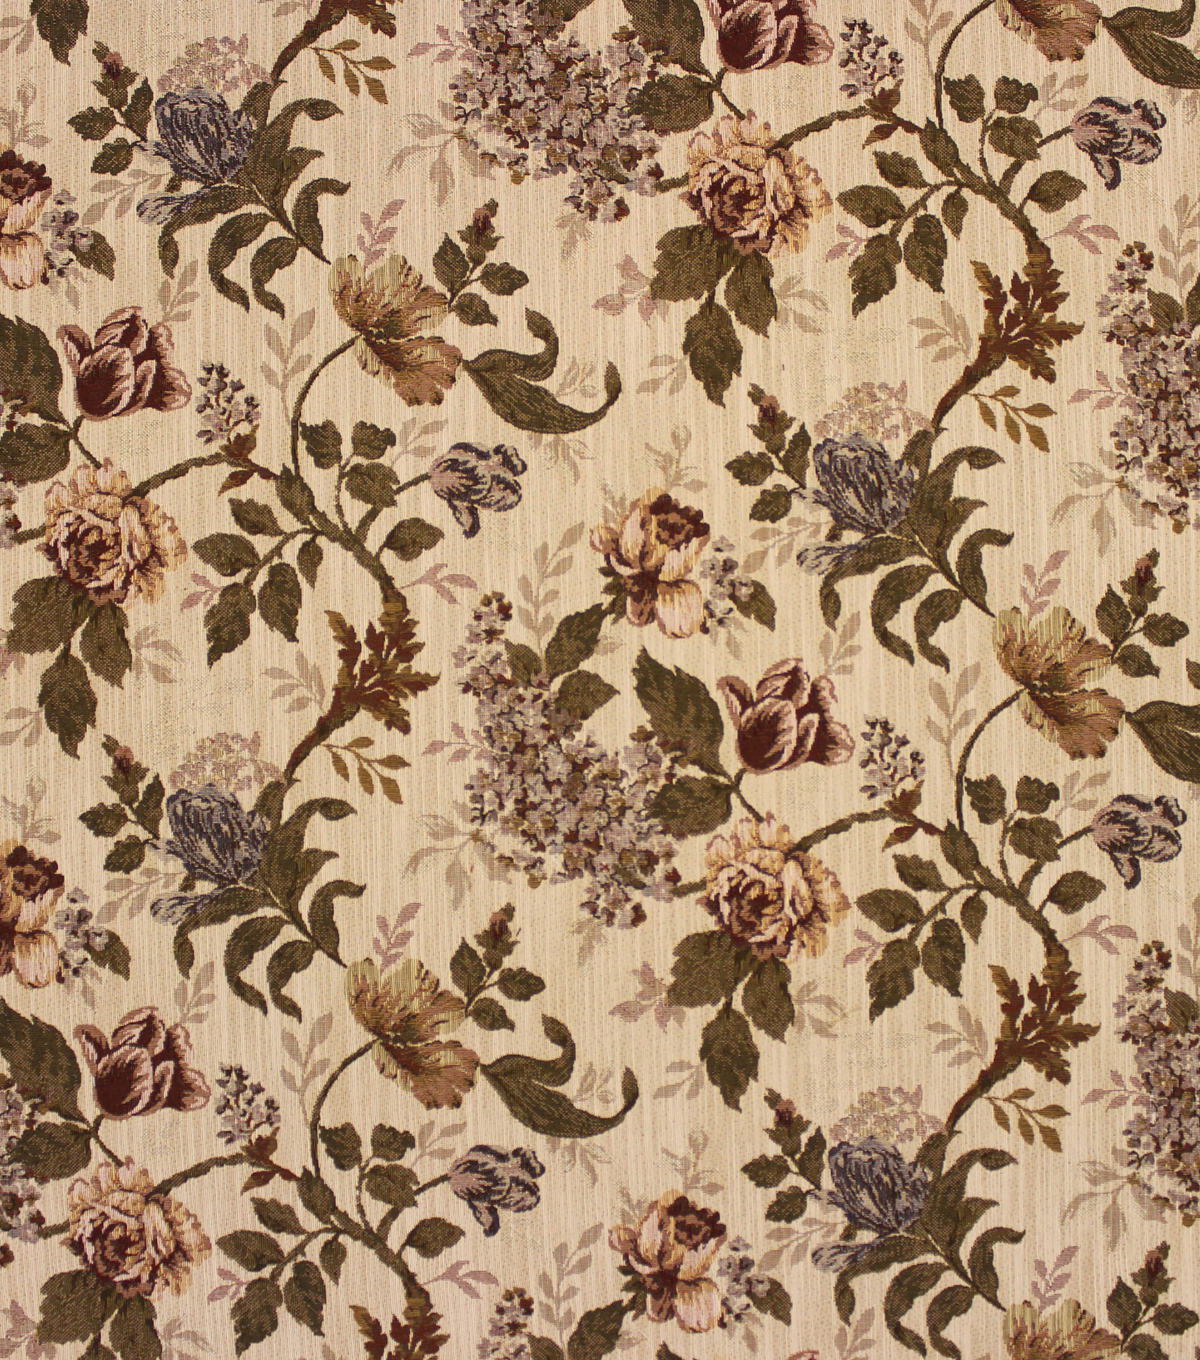 Home Decor 8\u0022x8\u0022 Fabric Swatch-Upholstery Fabric Barrow M8349-5857 Spring